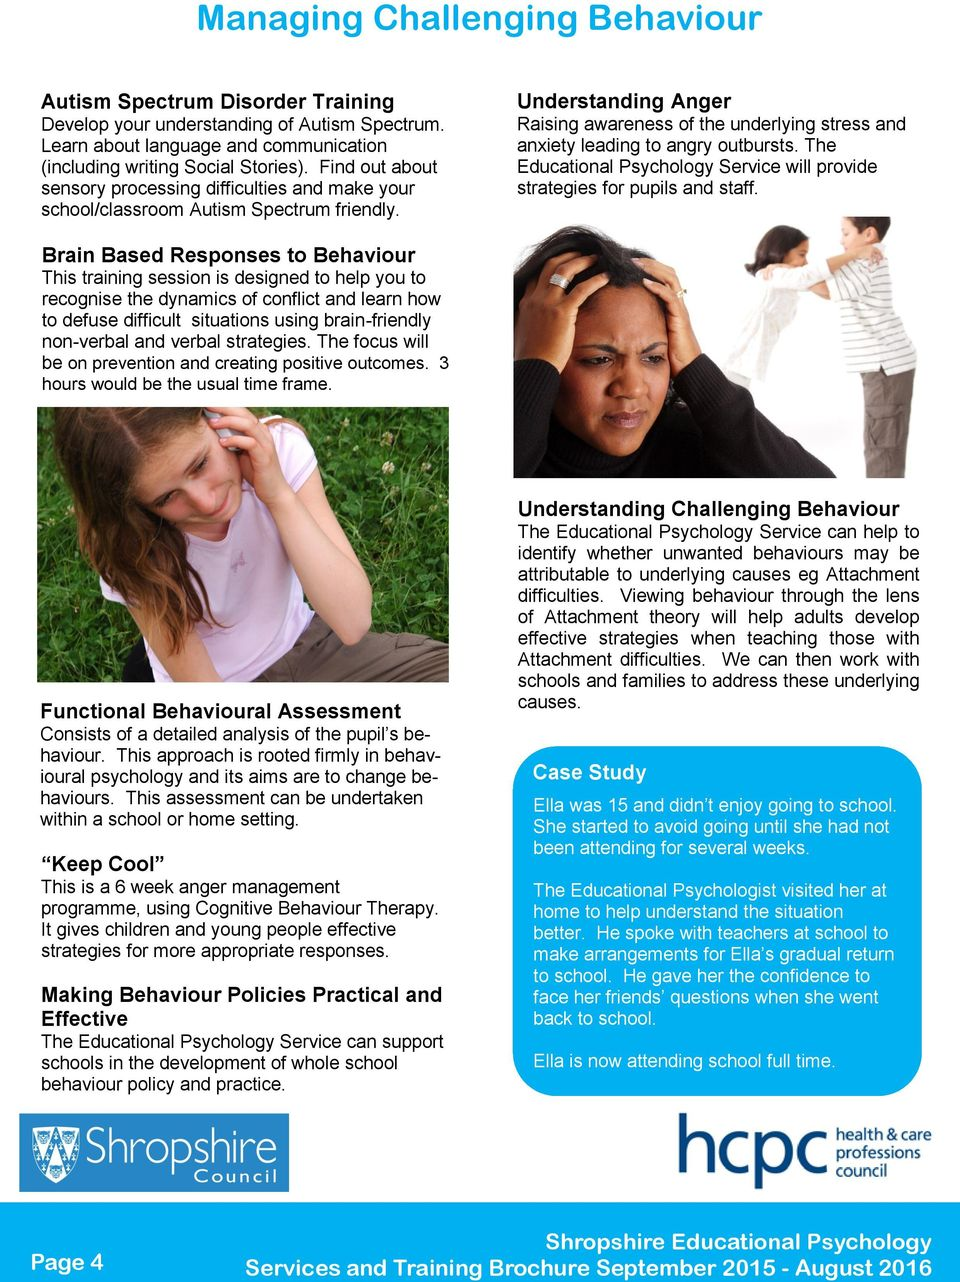 Understanding Anger Raising awareness of the underlying stress and anxiety leading to angry outbursts. The Educational Psychology Service will provide strategies for pupils and staff.